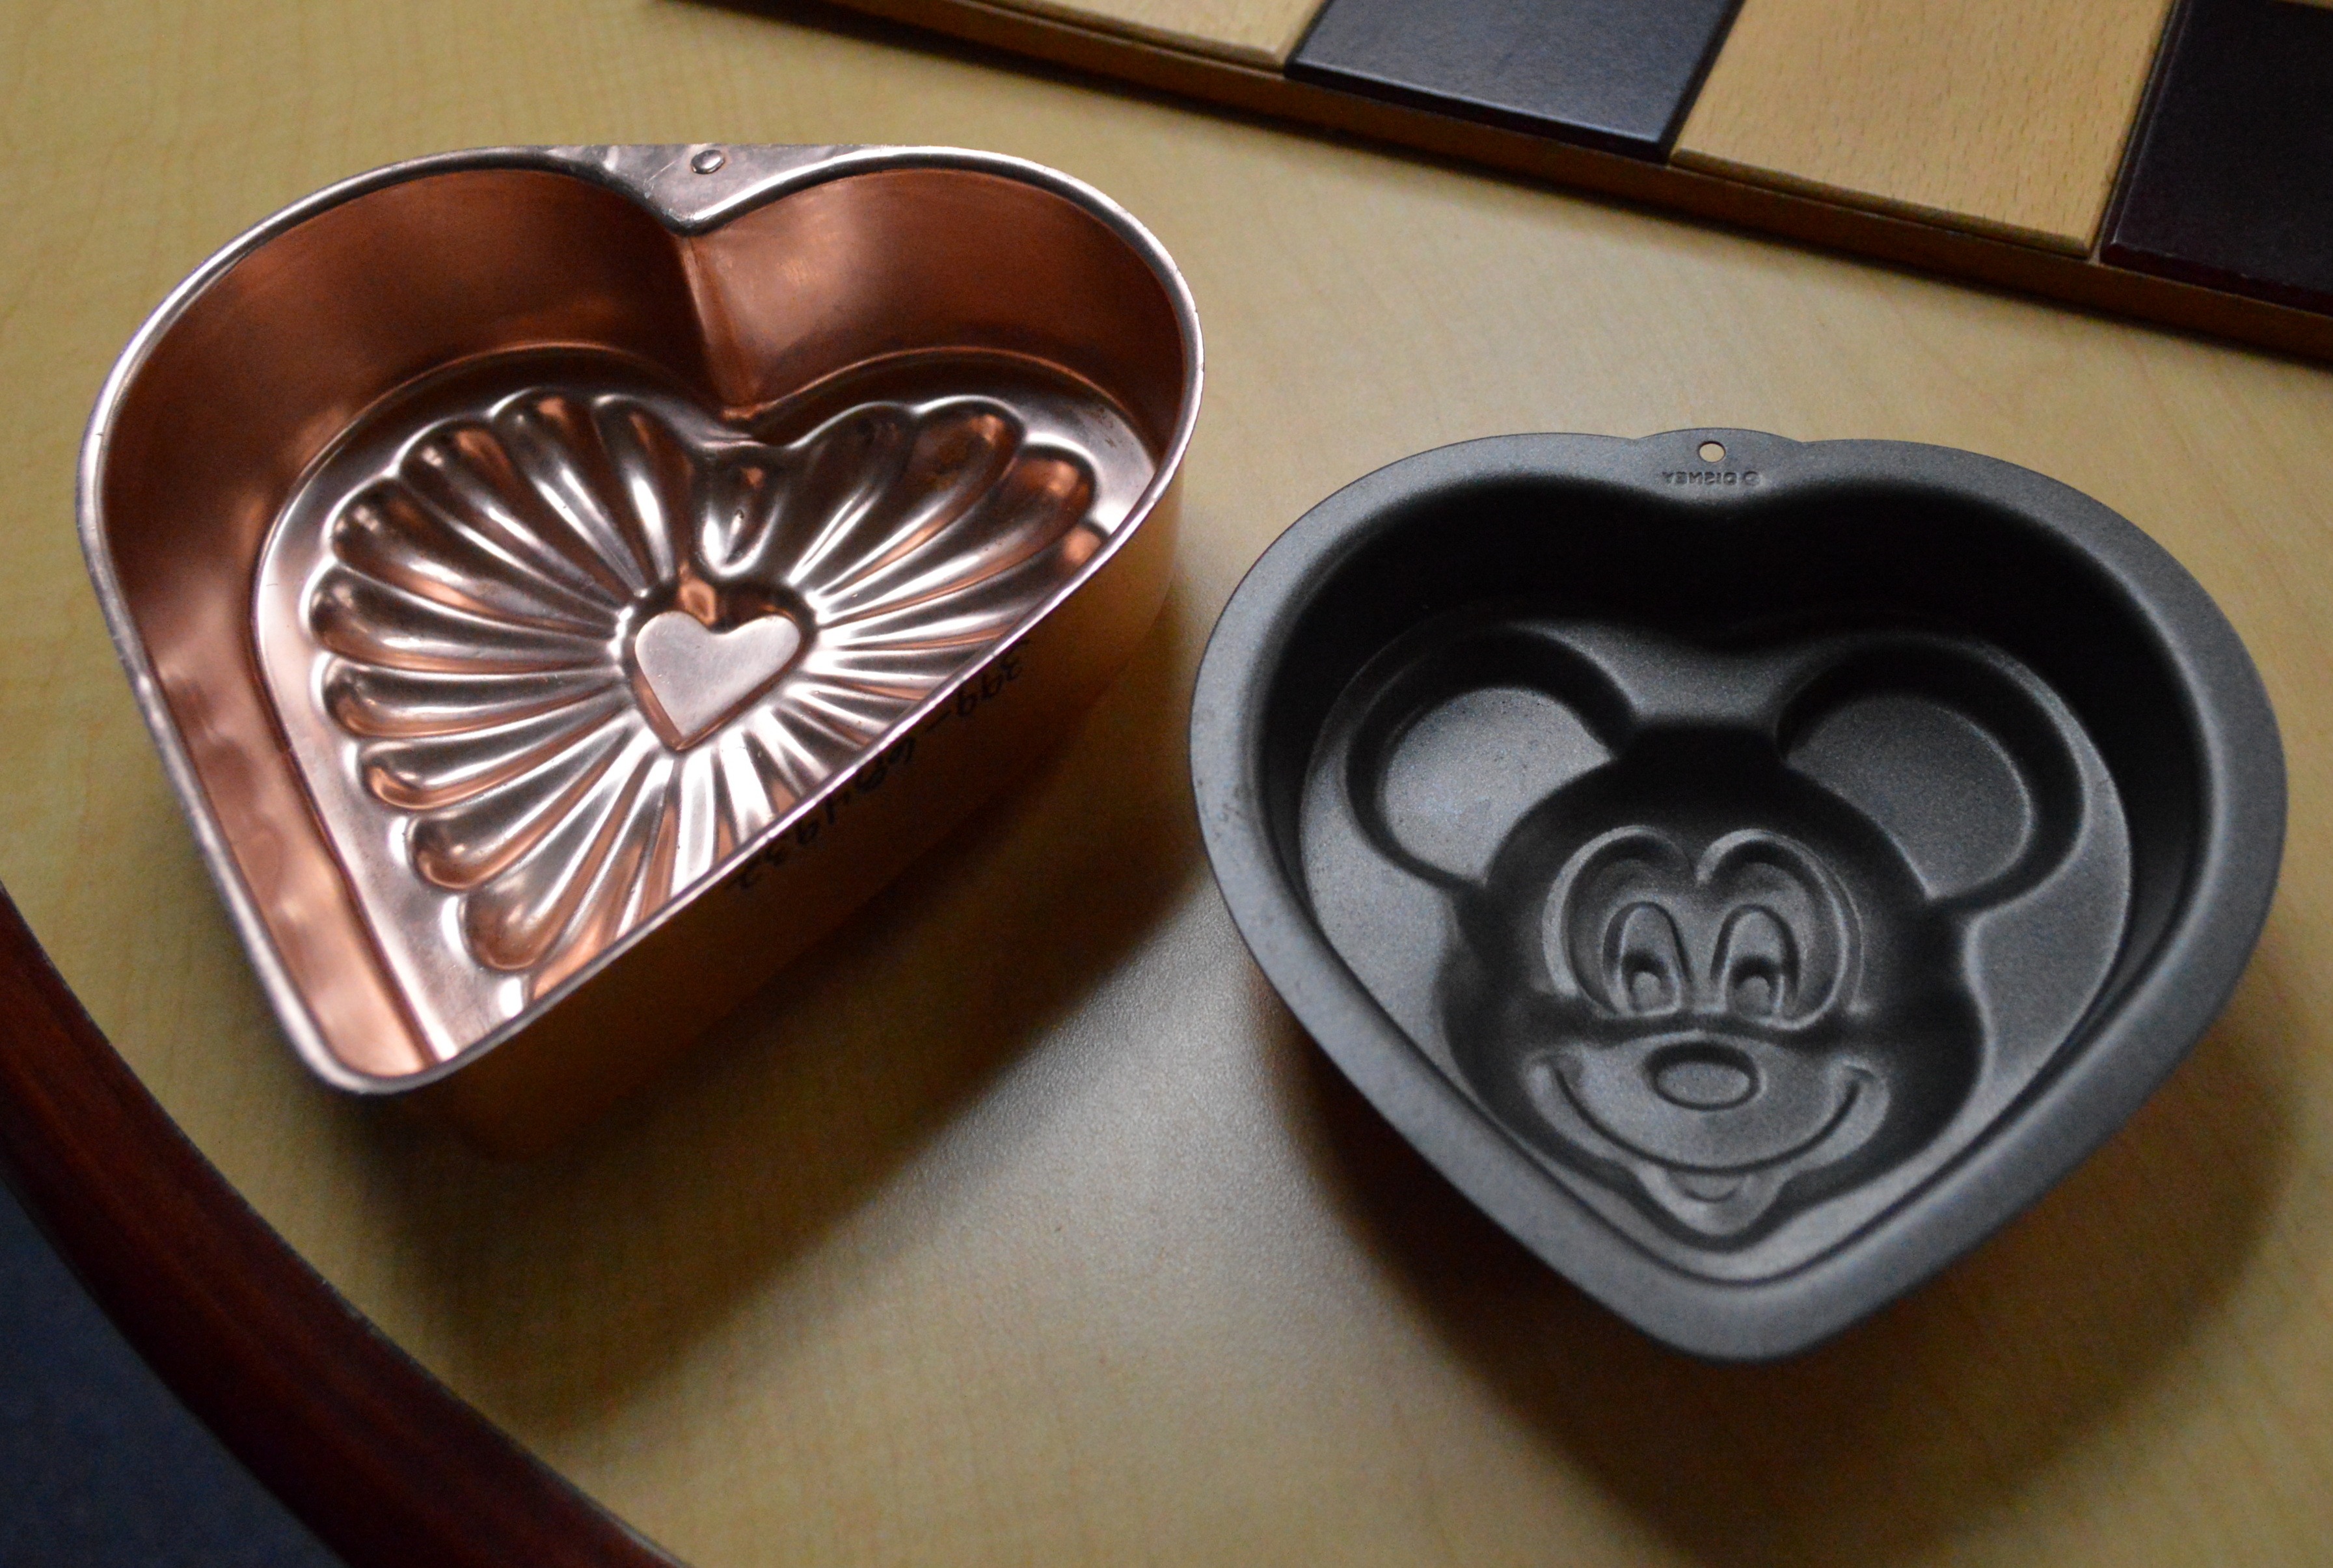 Image of a heart shaped baking pan and a Mickey Mouse head shaped baking pan